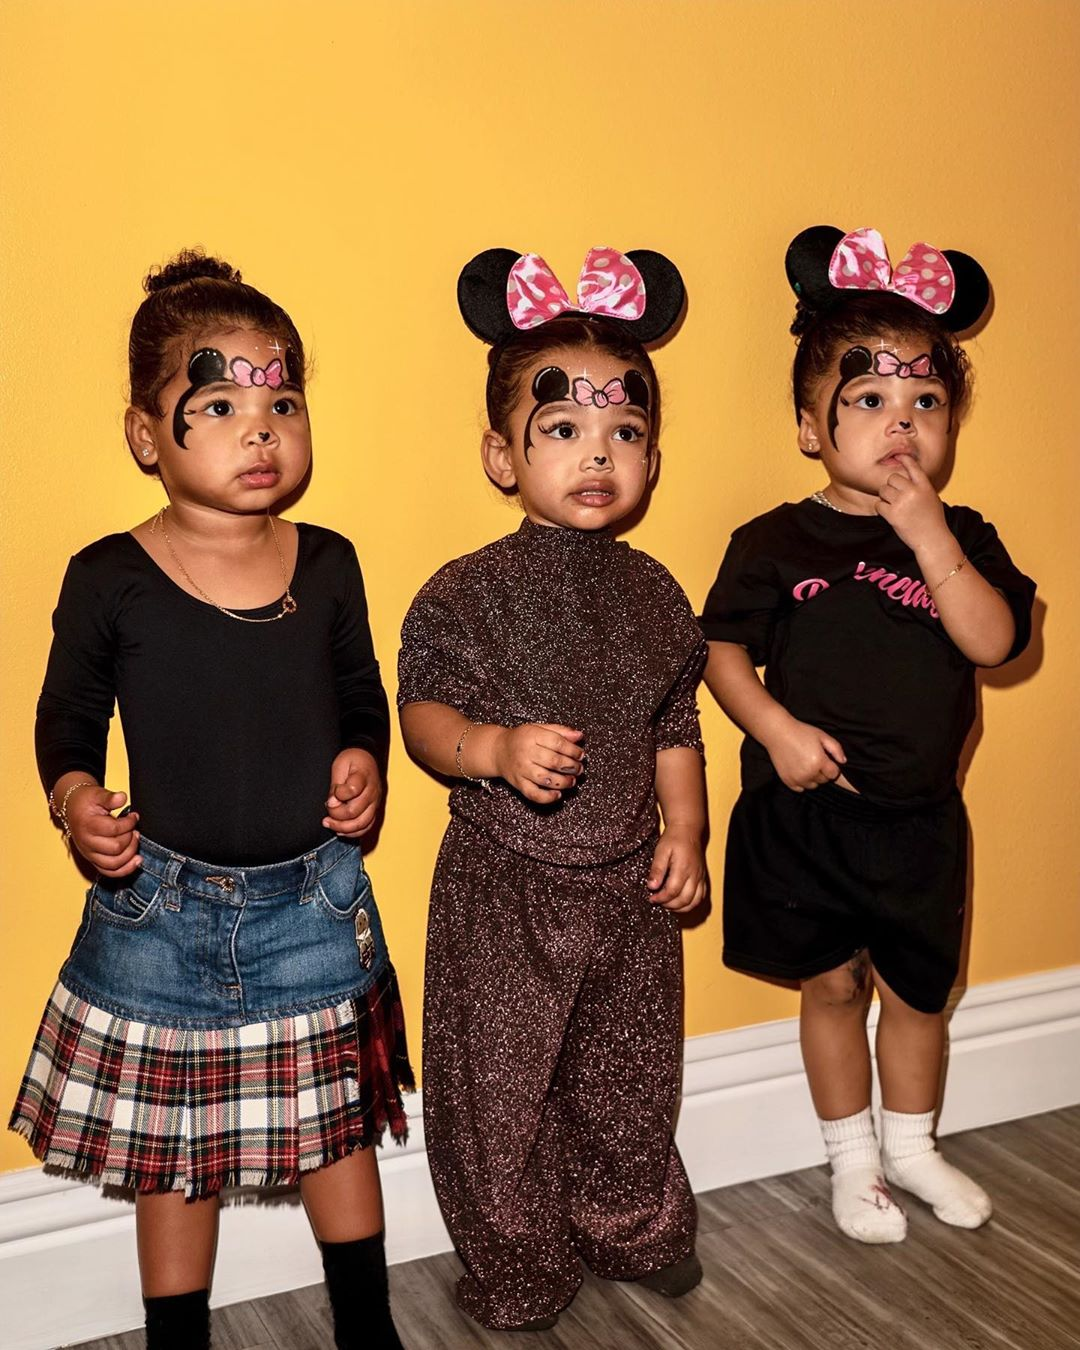 True, Chi, Stormi as Minnie Mouse